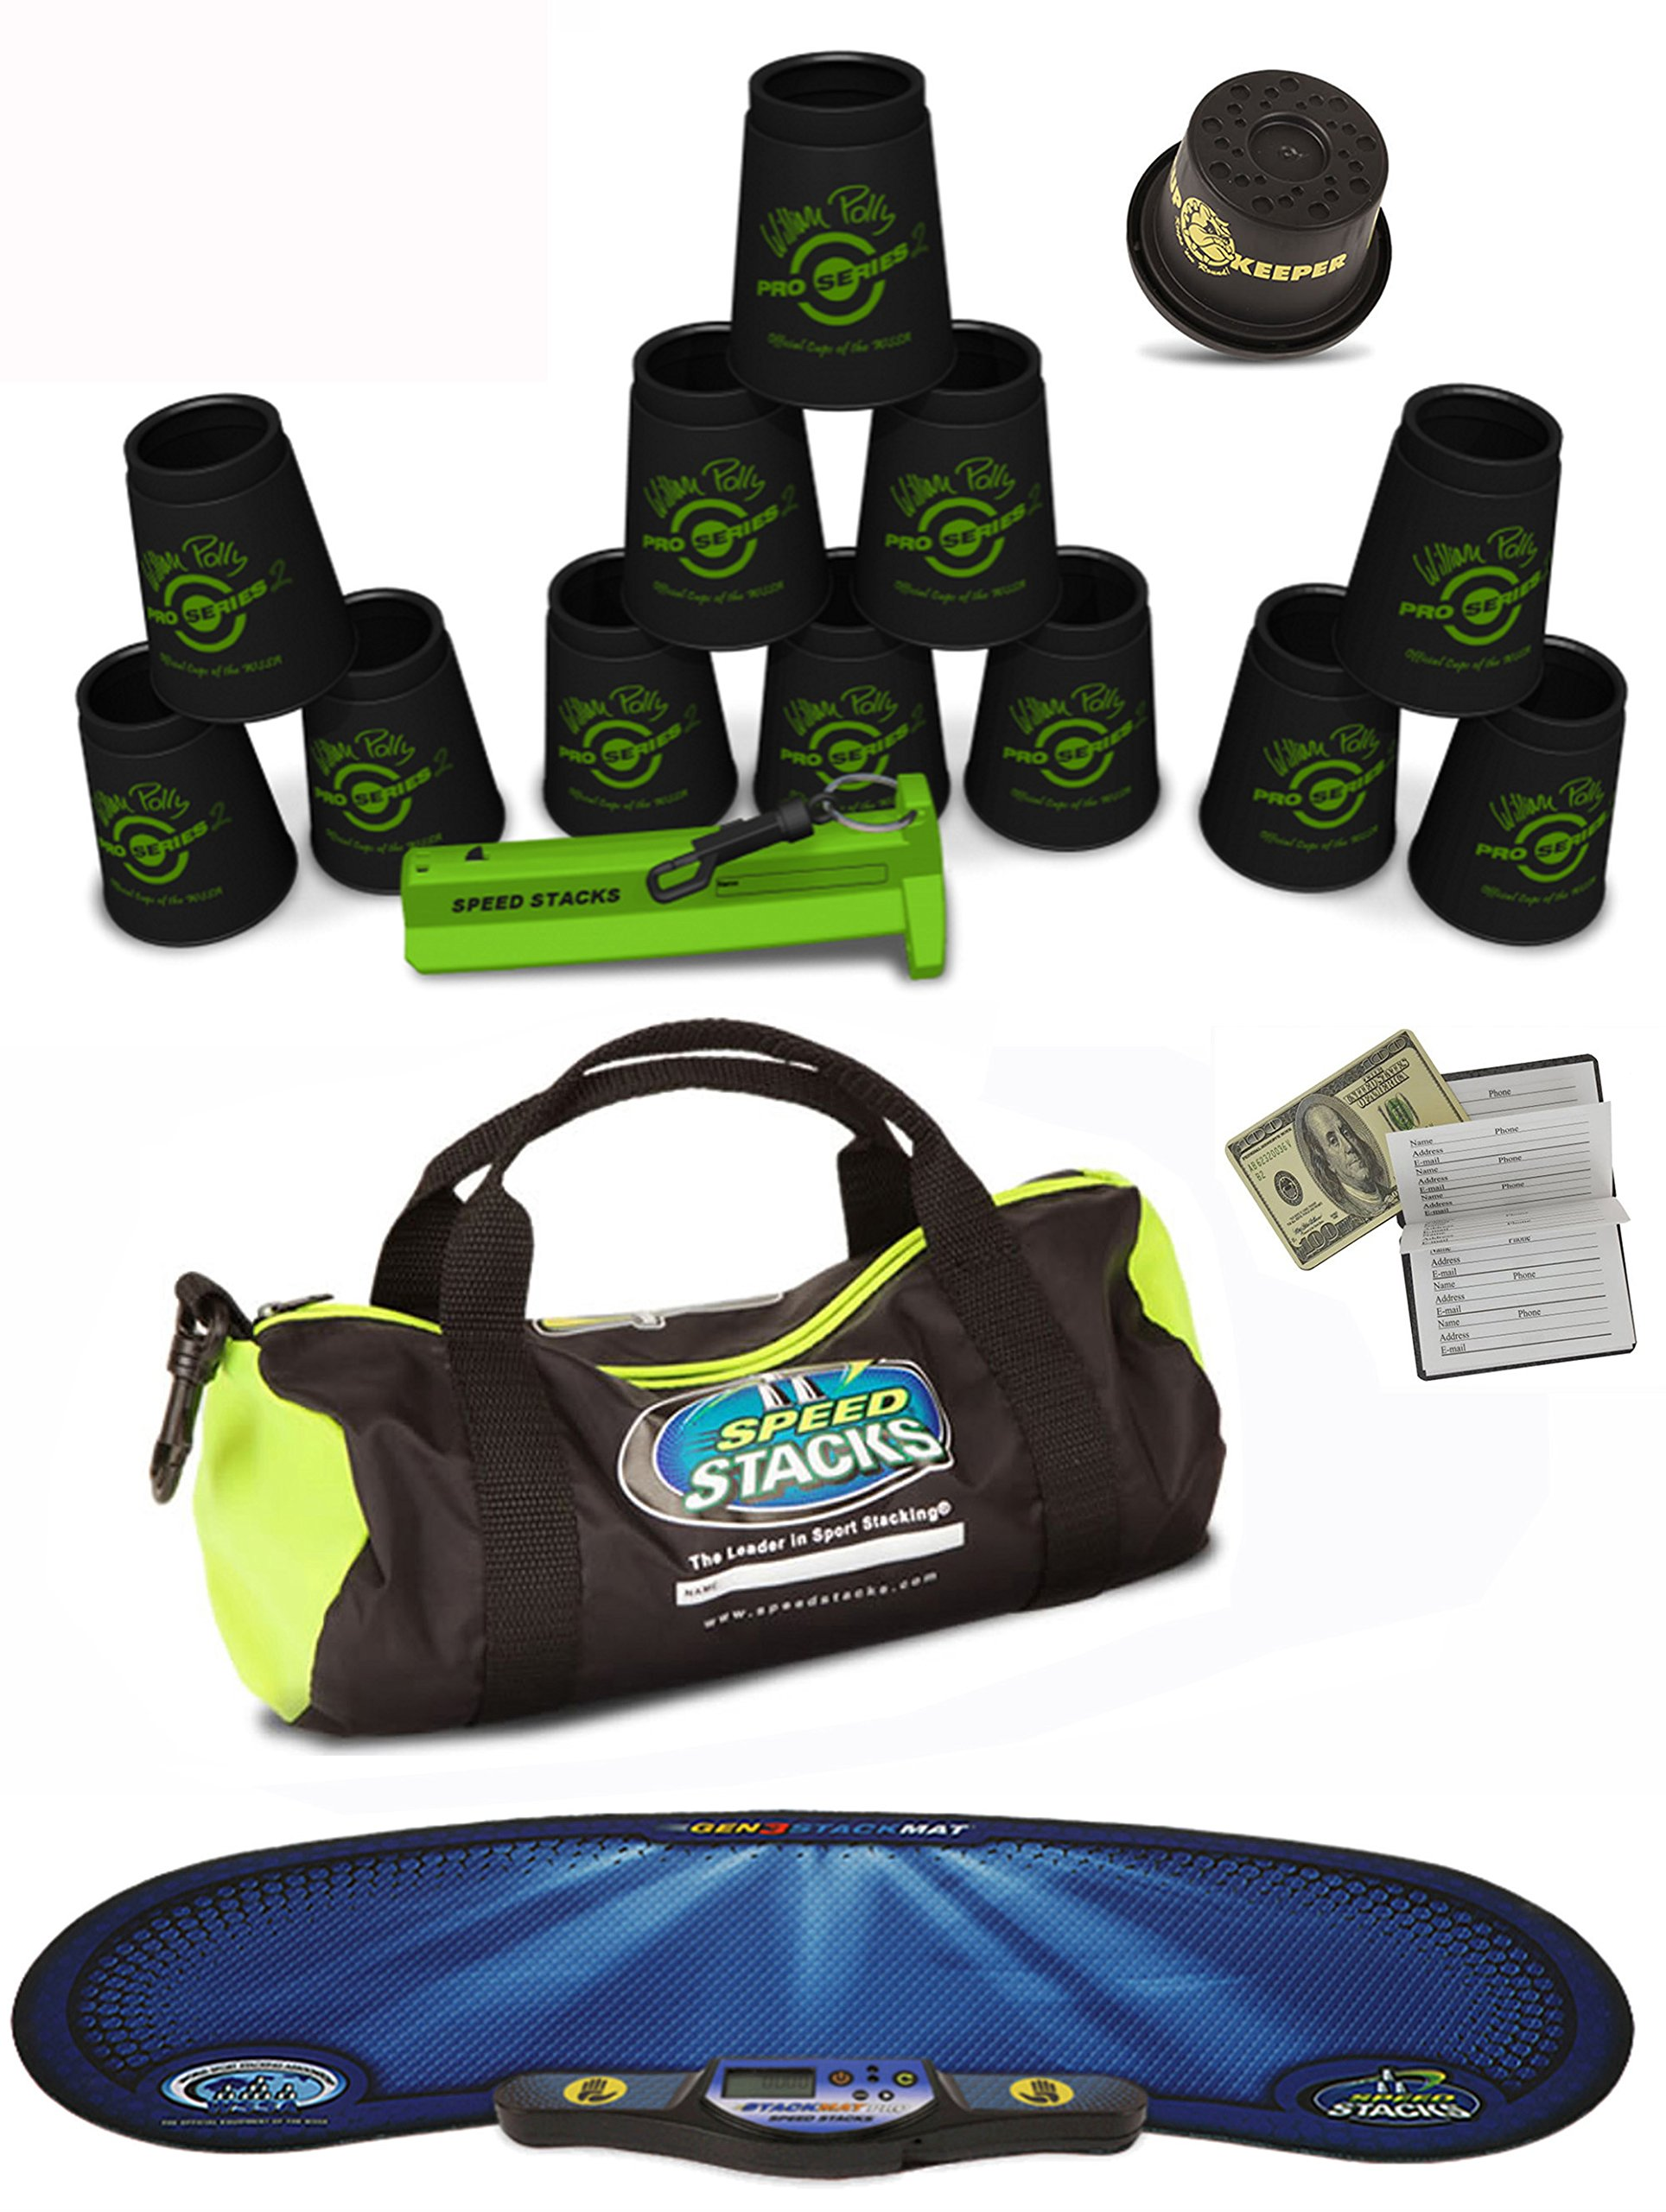 Speed Stacks Custom Combo Set - The Works: 12 Pro Series BLACK 4'' Cups, Cup Keeper, Quick Release Stem, Pro Timer, Gen 3 Mat, Gear Bag & $100 Design Magnetic Credit Card Size Address Book by Speed Stacks